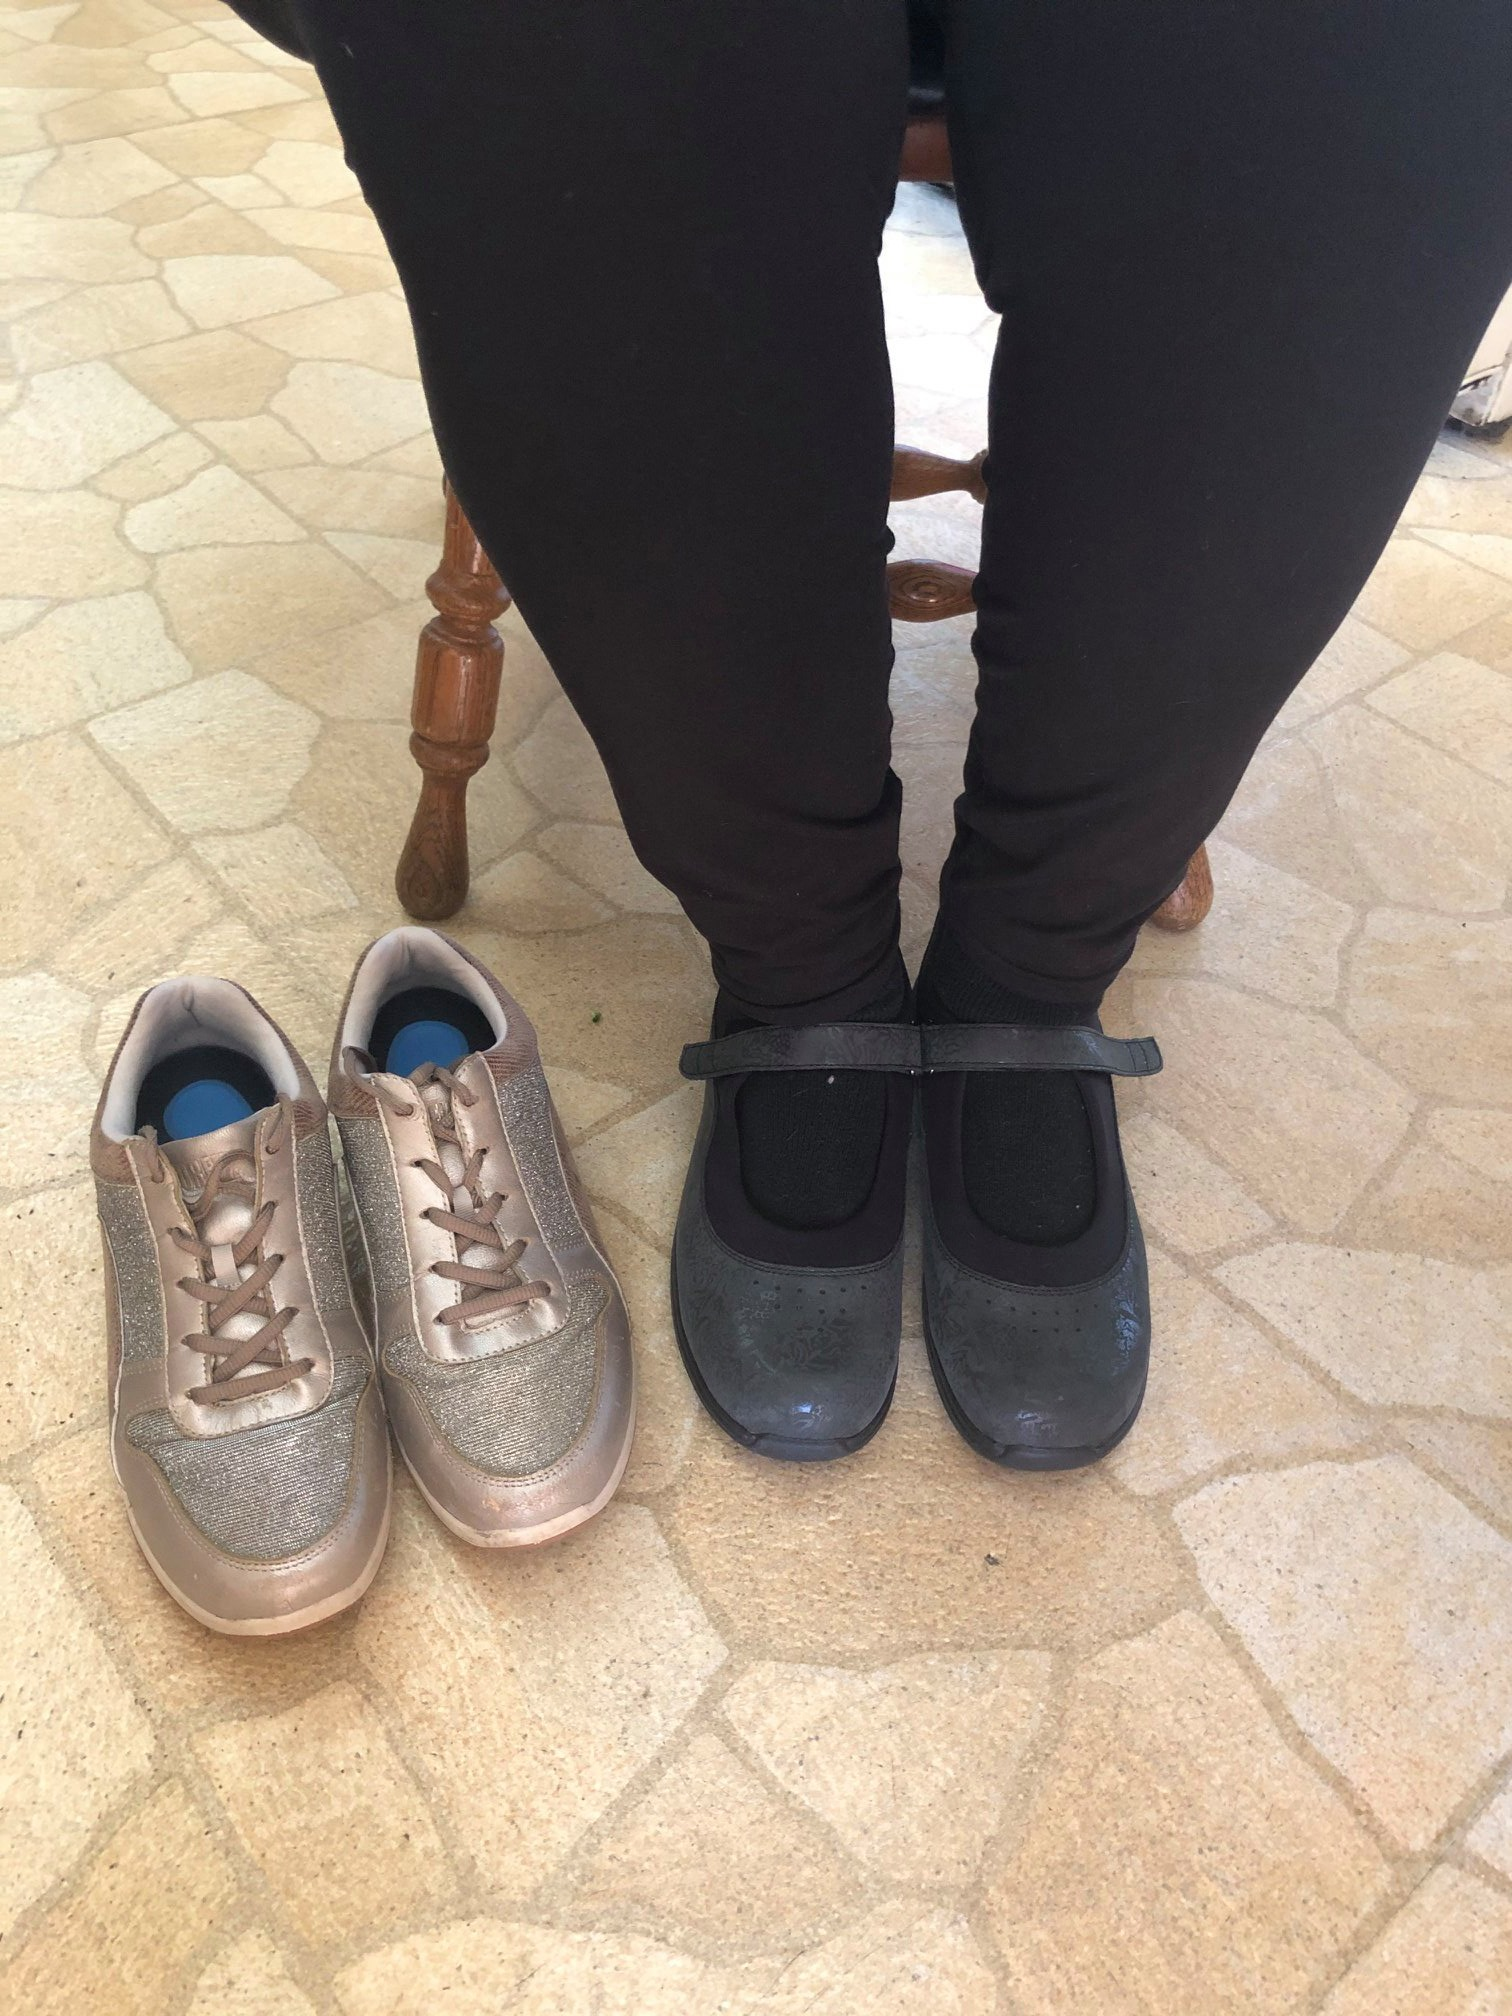 Patricia Wearing Her Drew's